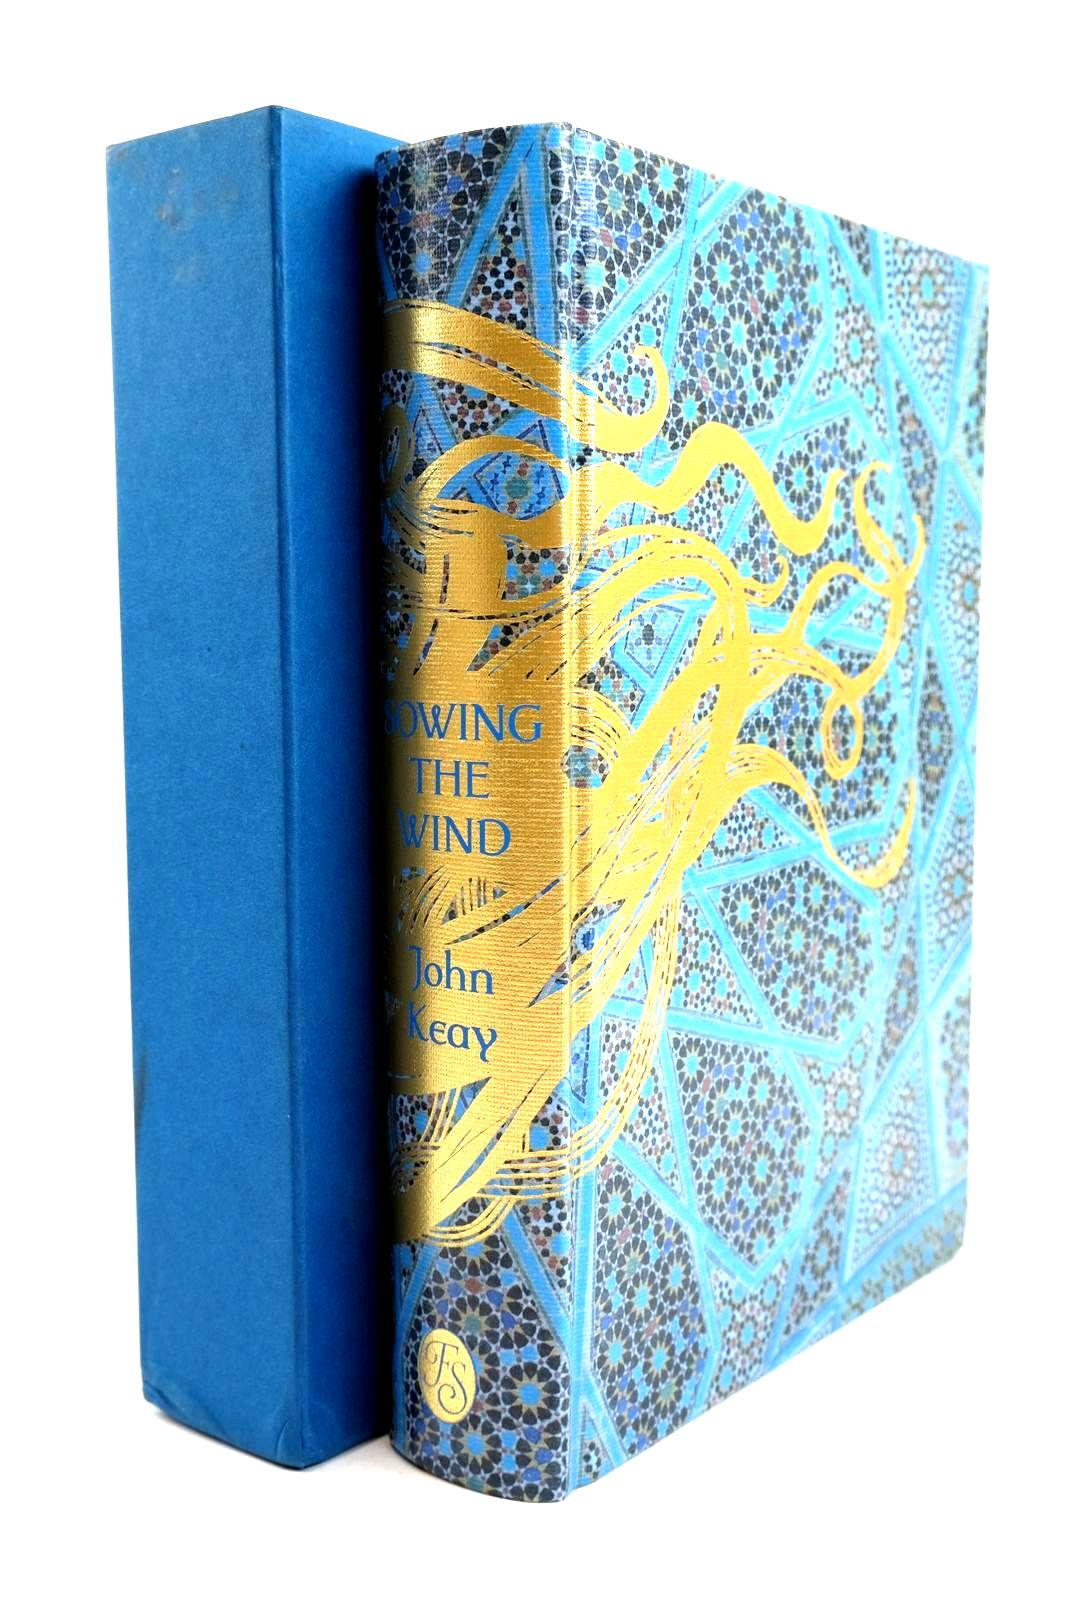 Photo of SOWING THE WIND written by Keay, John Fisk, Robert published by Folio Society (STOCK CODE: 1320251)  for sale by Stella & Rose's Books